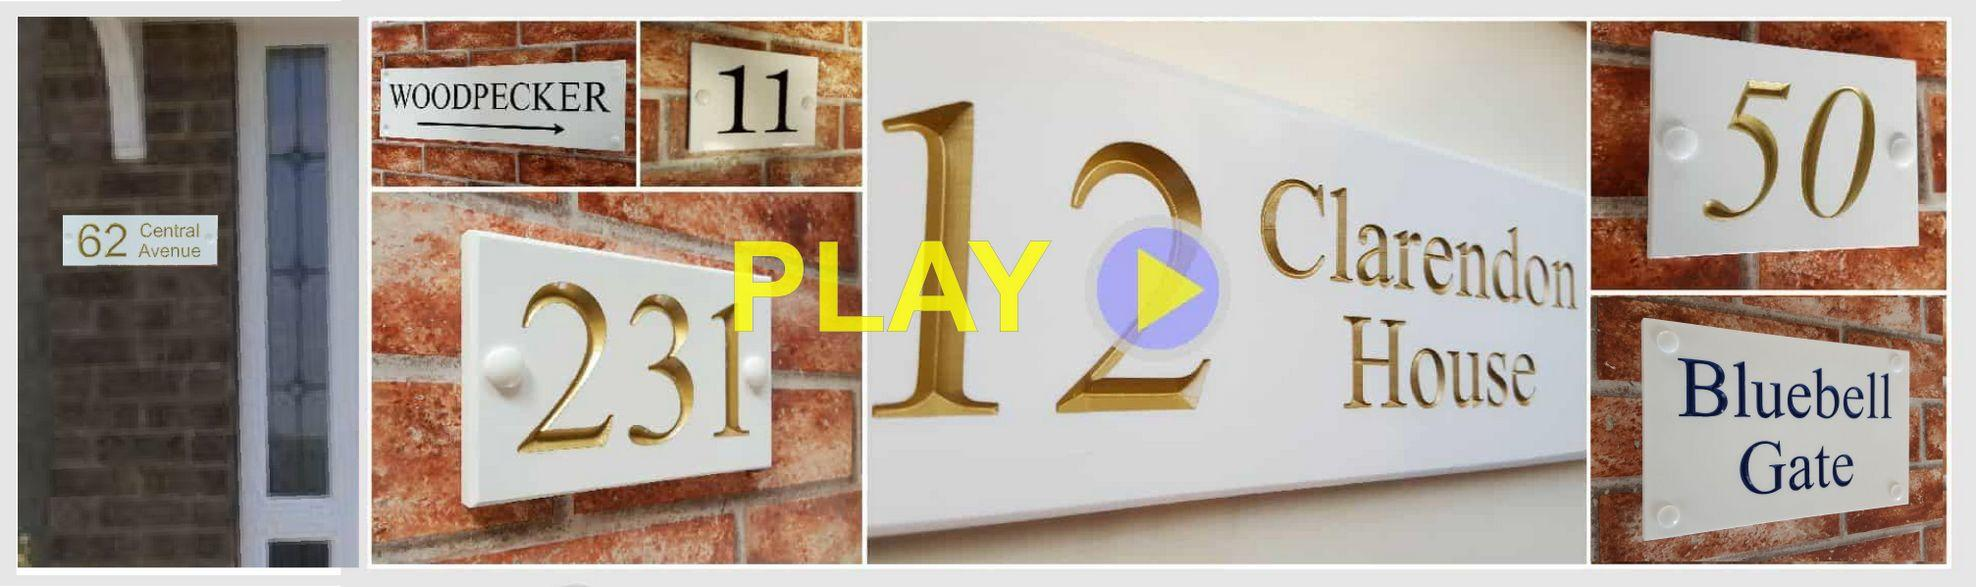 White engraved house plaques by Yoursigns Ltd